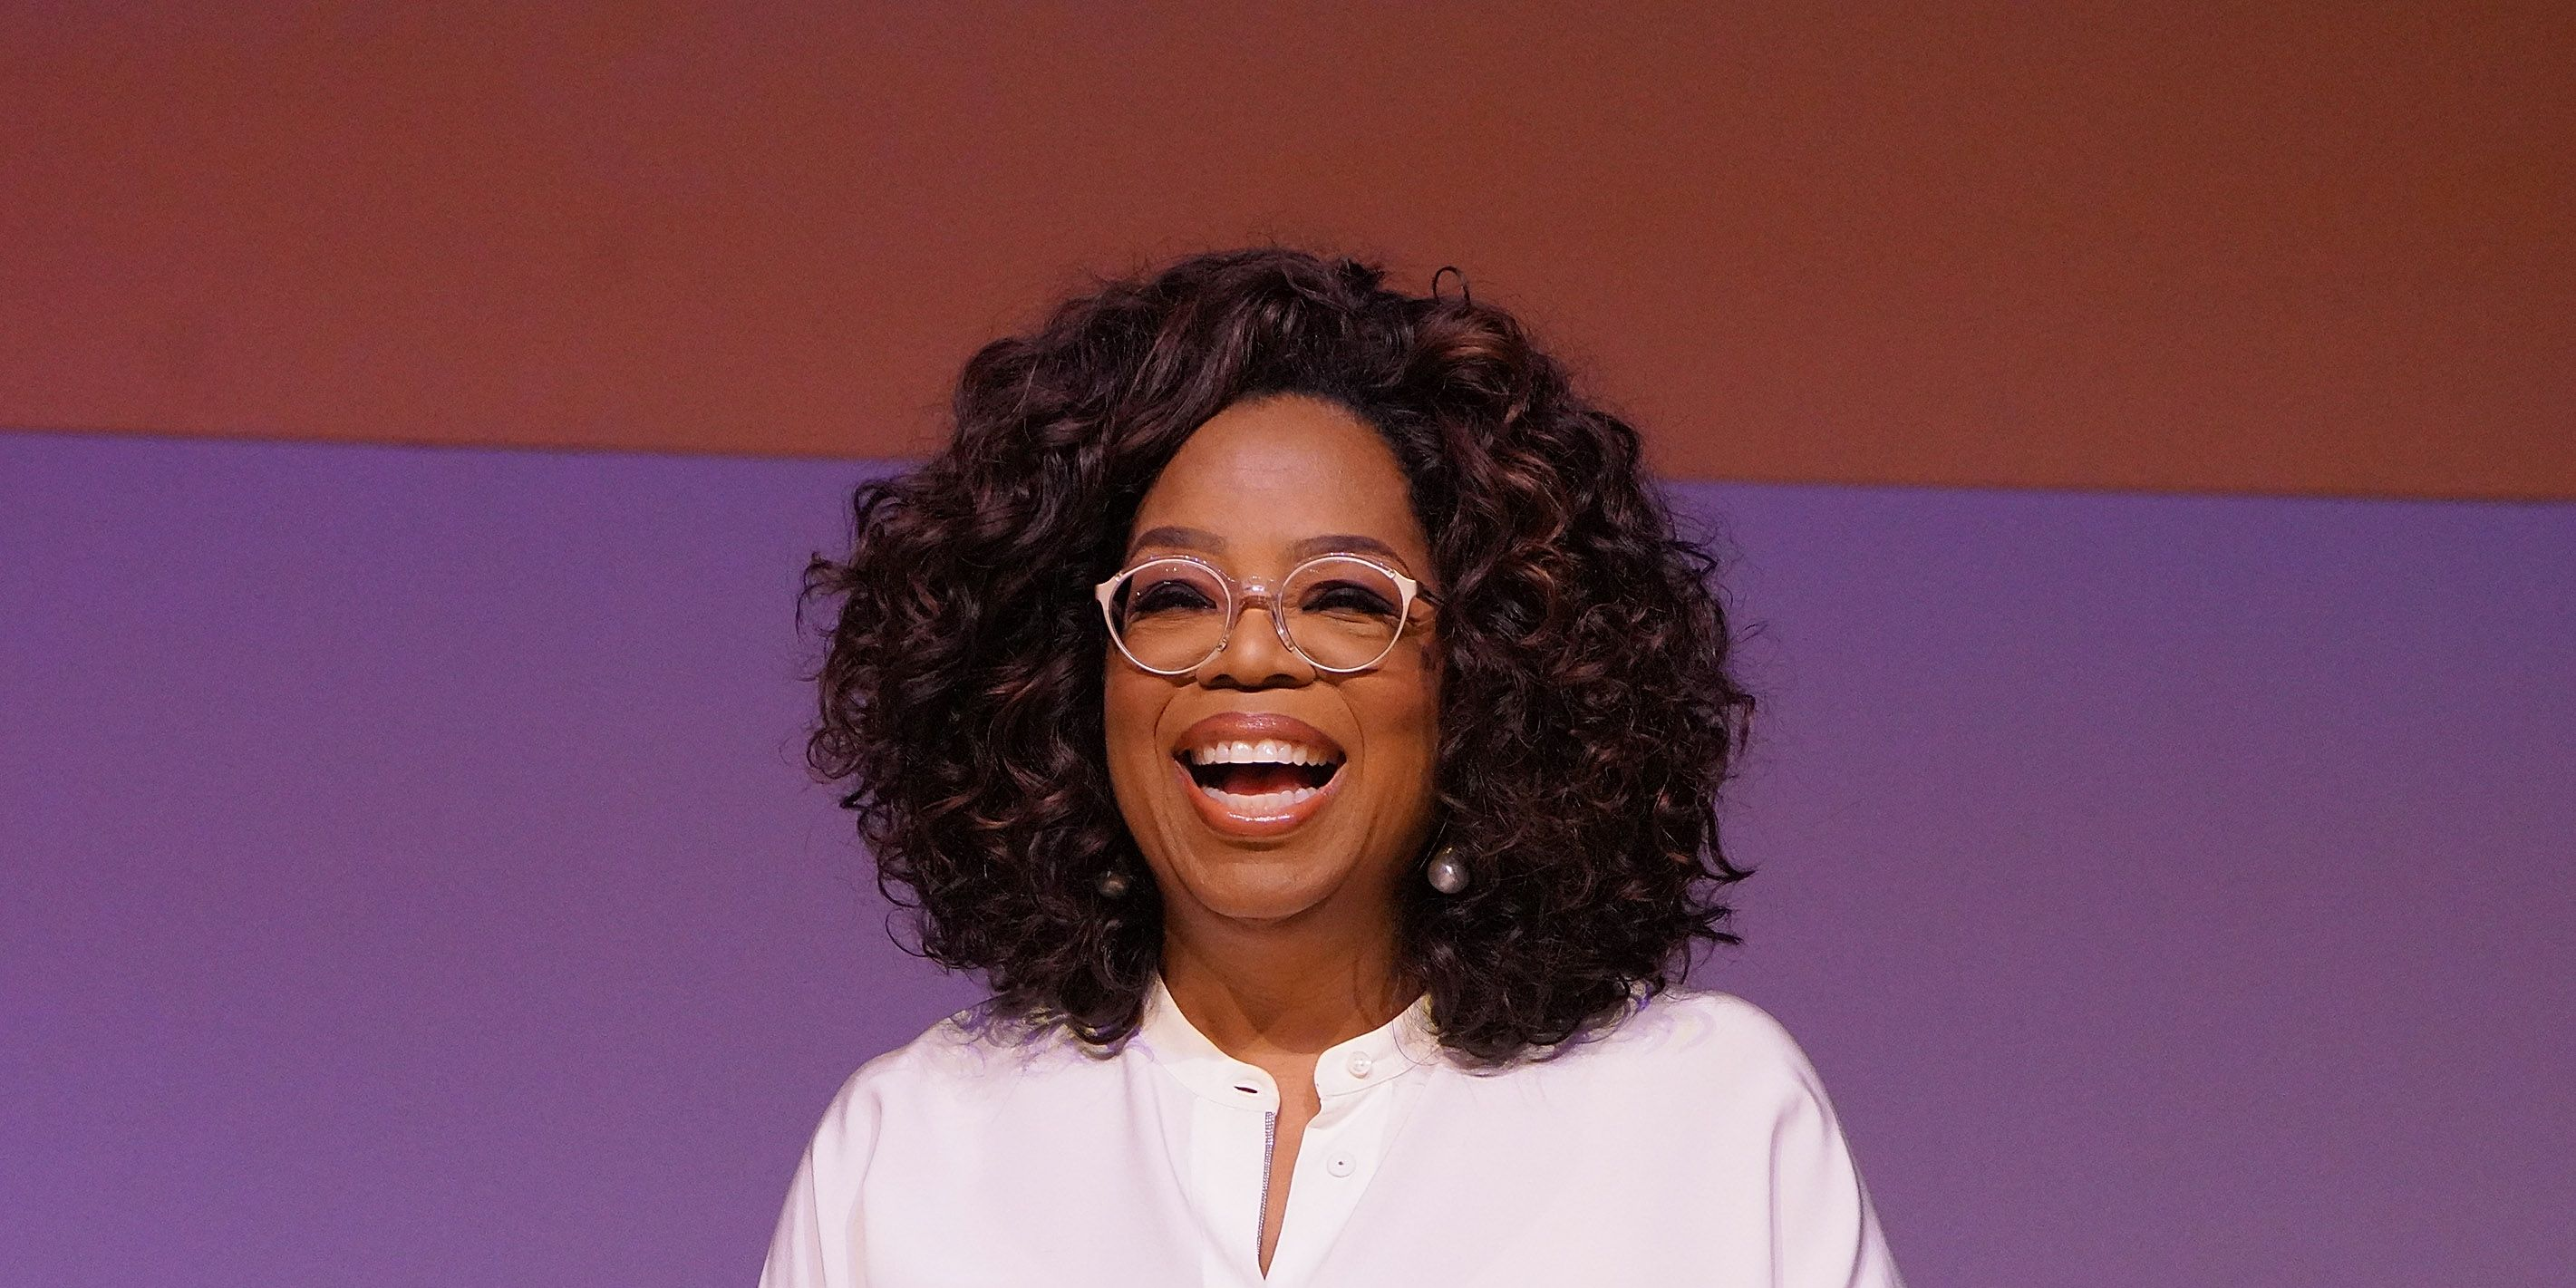 Oprah Winfrey Attends The Dignity of Women Conversation At The University of Johannesburg